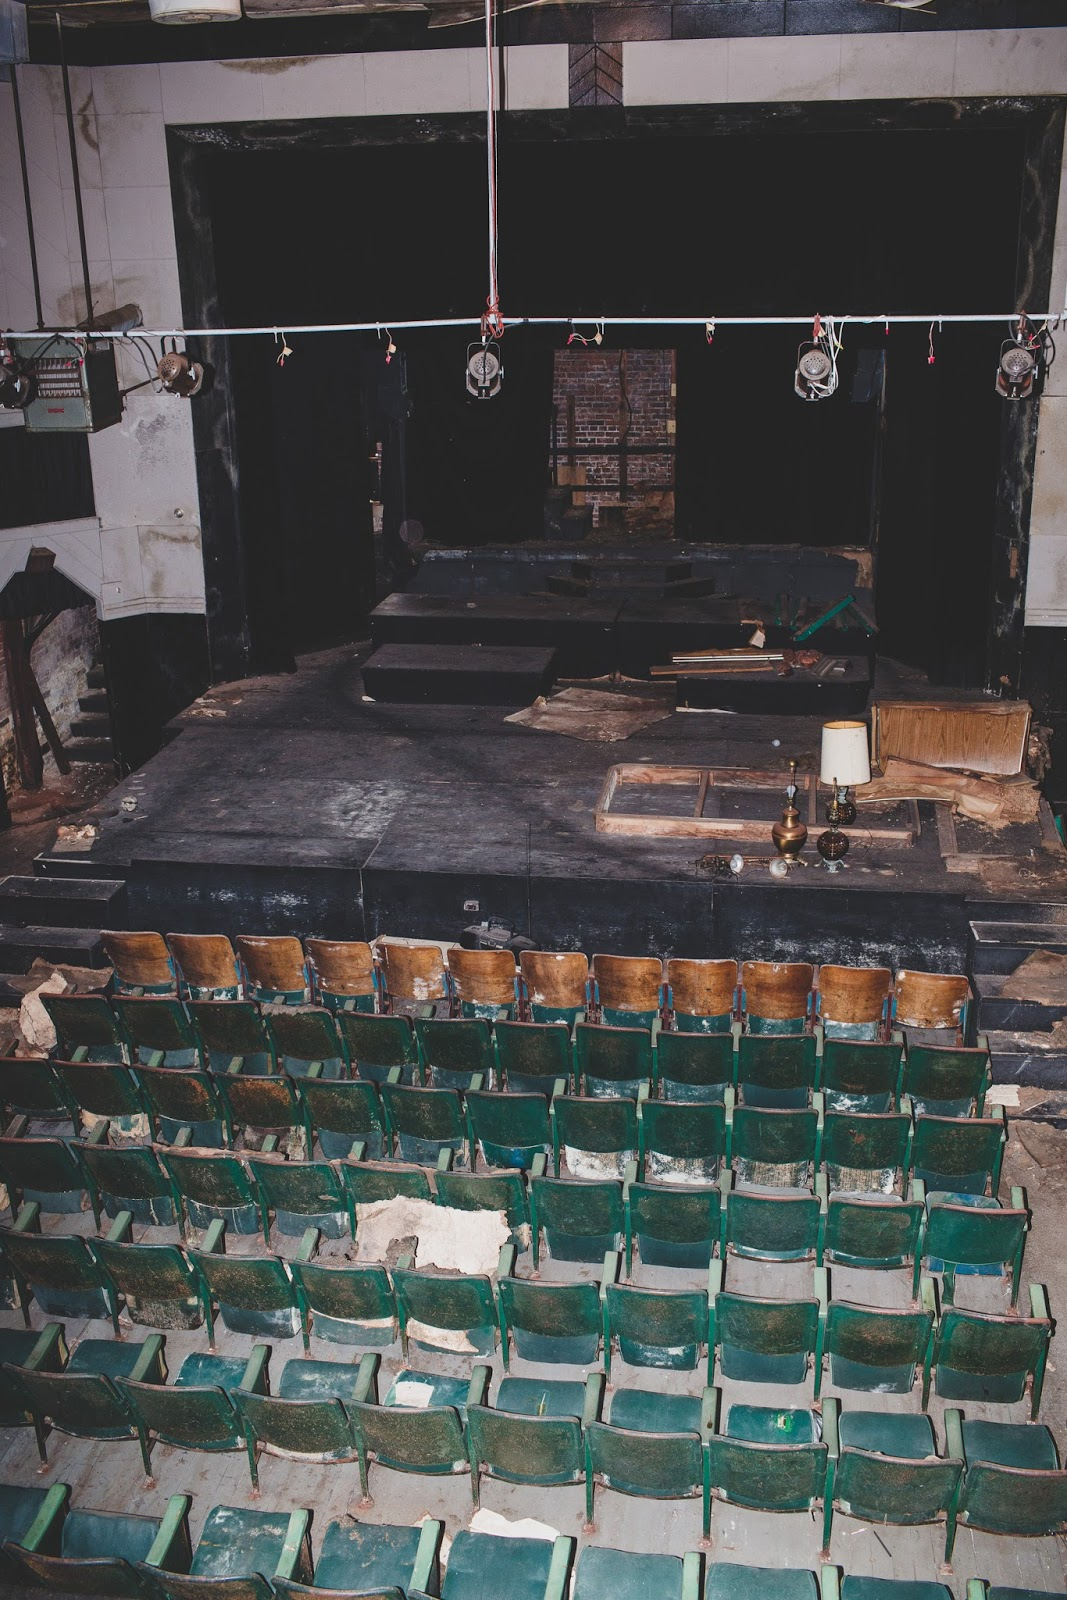 The Bells Theatre in need of repair - Help revive this historic cinema! - bit.ly/bellstheatre